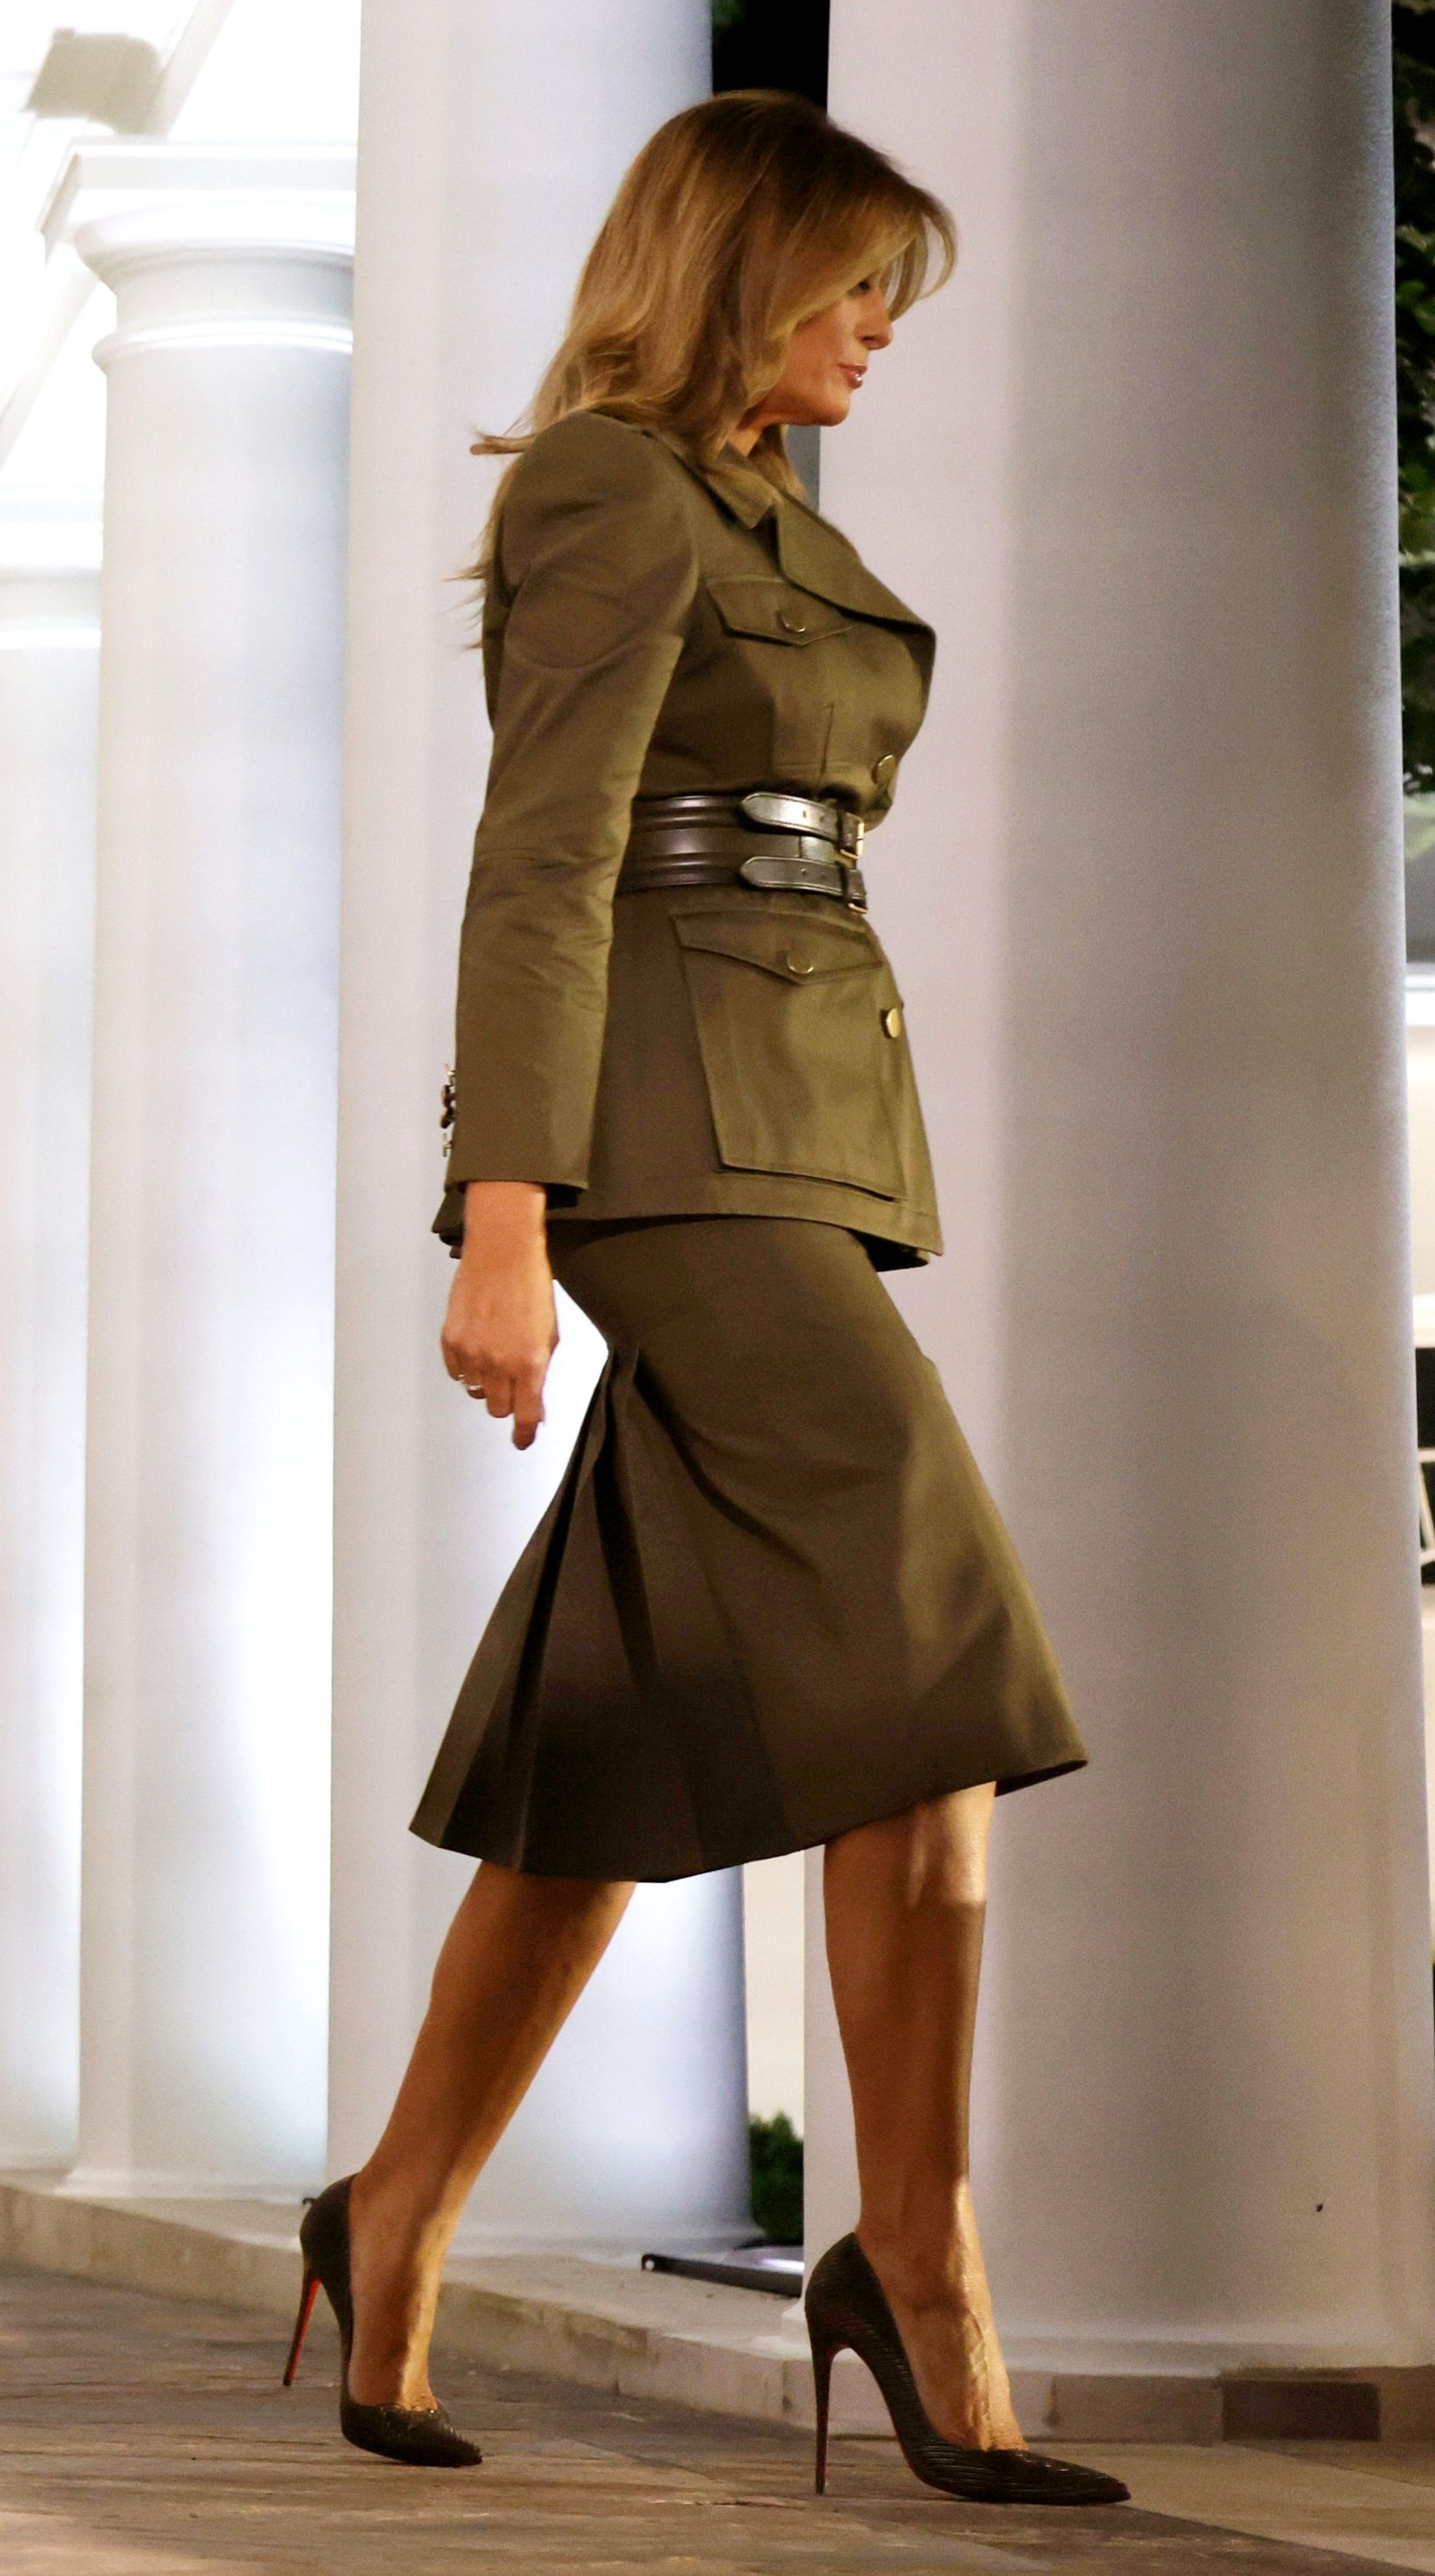 Flotus Melania Trump Arrives In The Rose Garden To Deliver Her Speech For The Republican National Conventio In 2020 First Lady Melania Trump Fashion First Lady Melania